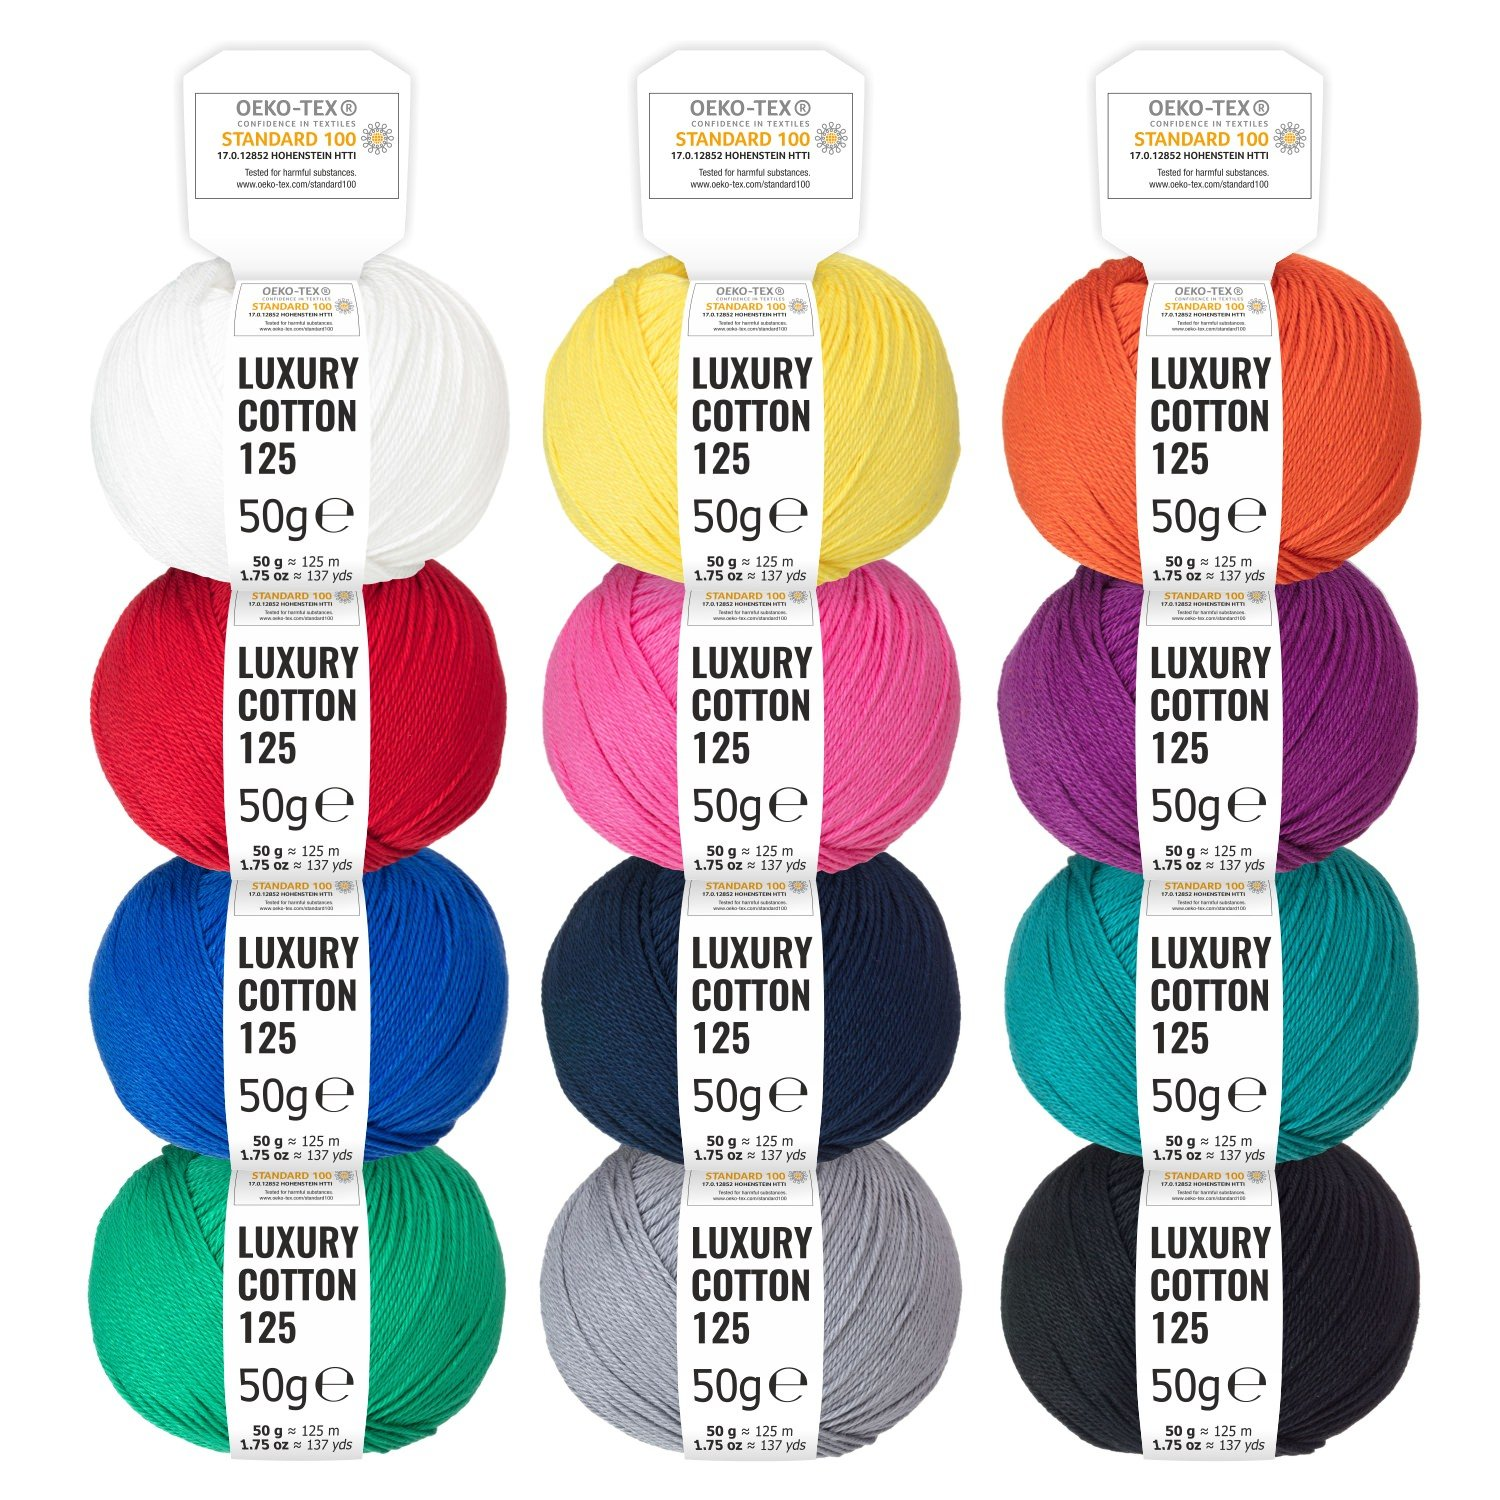 100% Cotton Mixed Colours - 600g (12 x 50g) - Oeko Tex Standard 100 shiny wool for knitting and crochet - cotton yarn set in 12 colours by fairwool Marten Handels GmbH